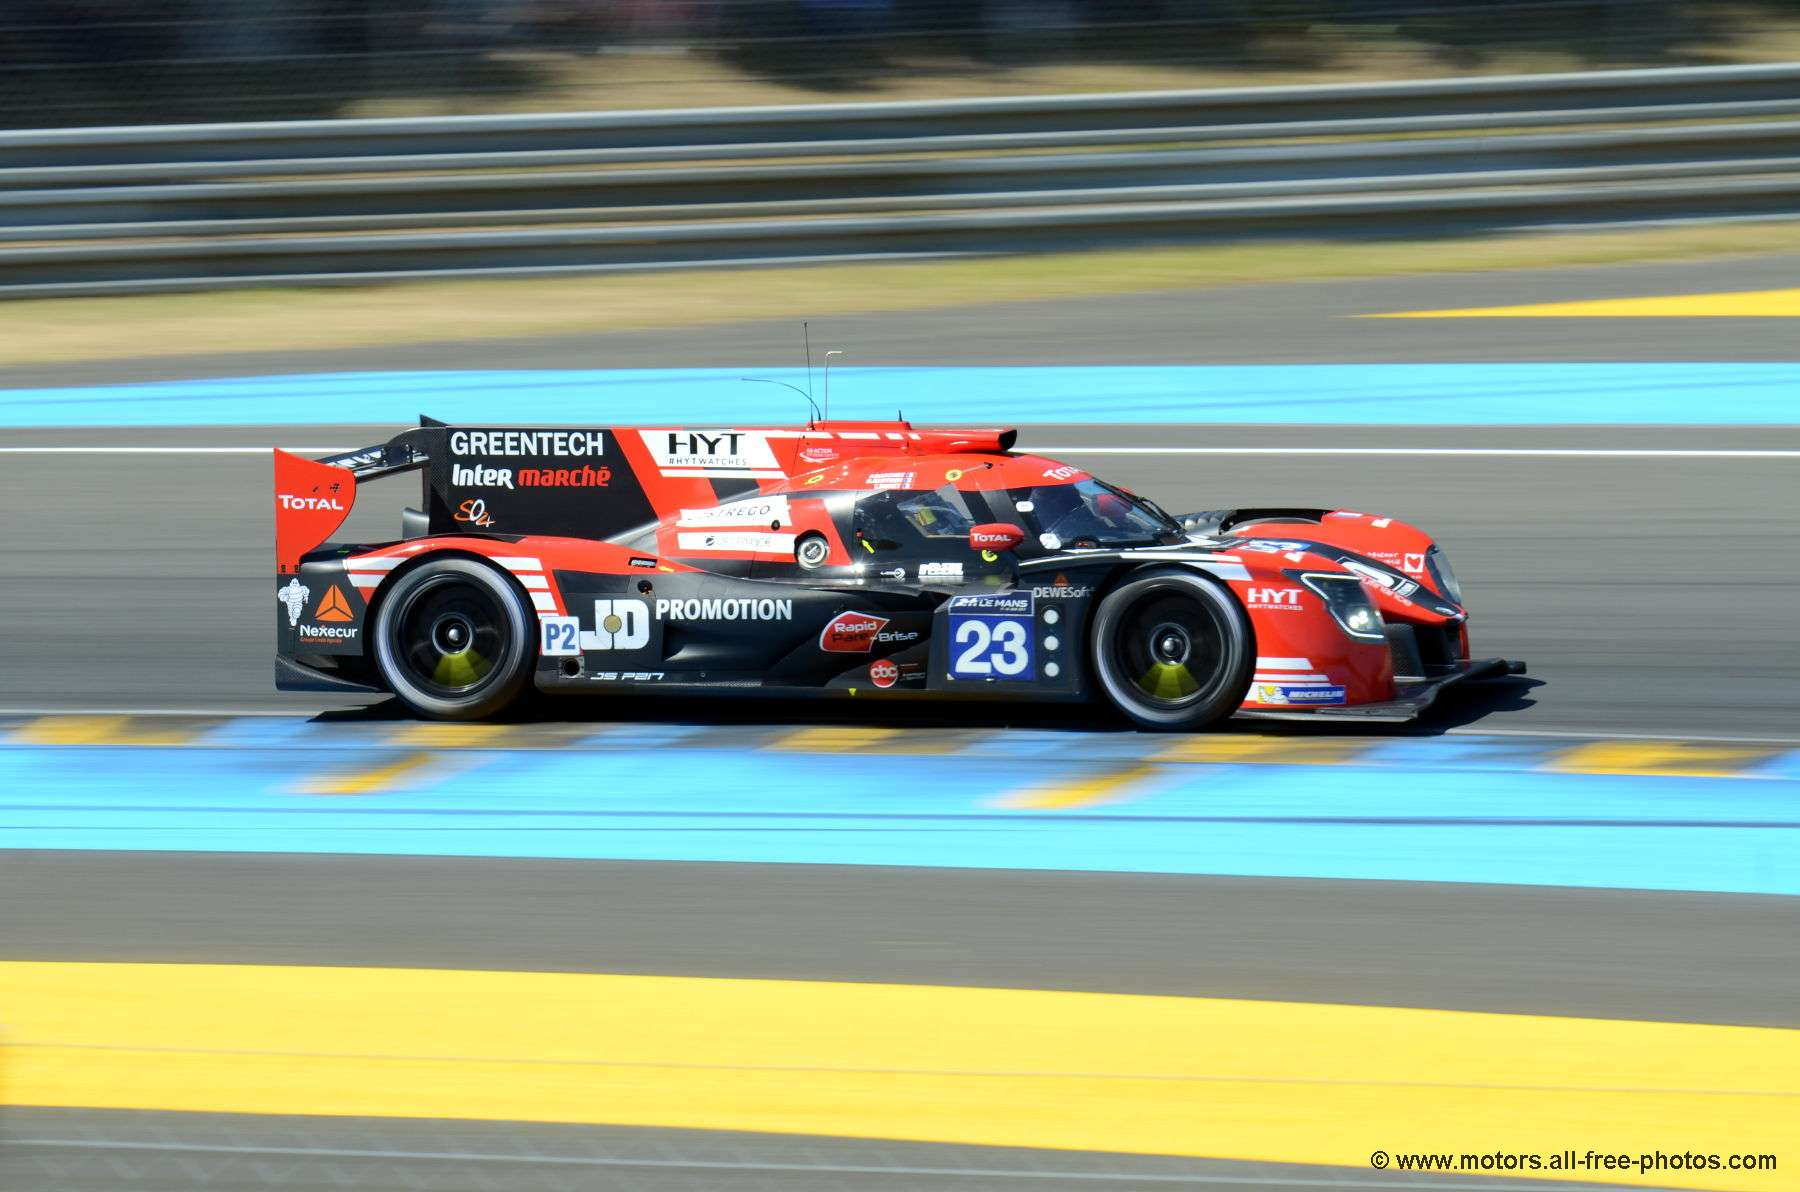 Ligier JSP217-Gibson - Team Panis Barthez Competition